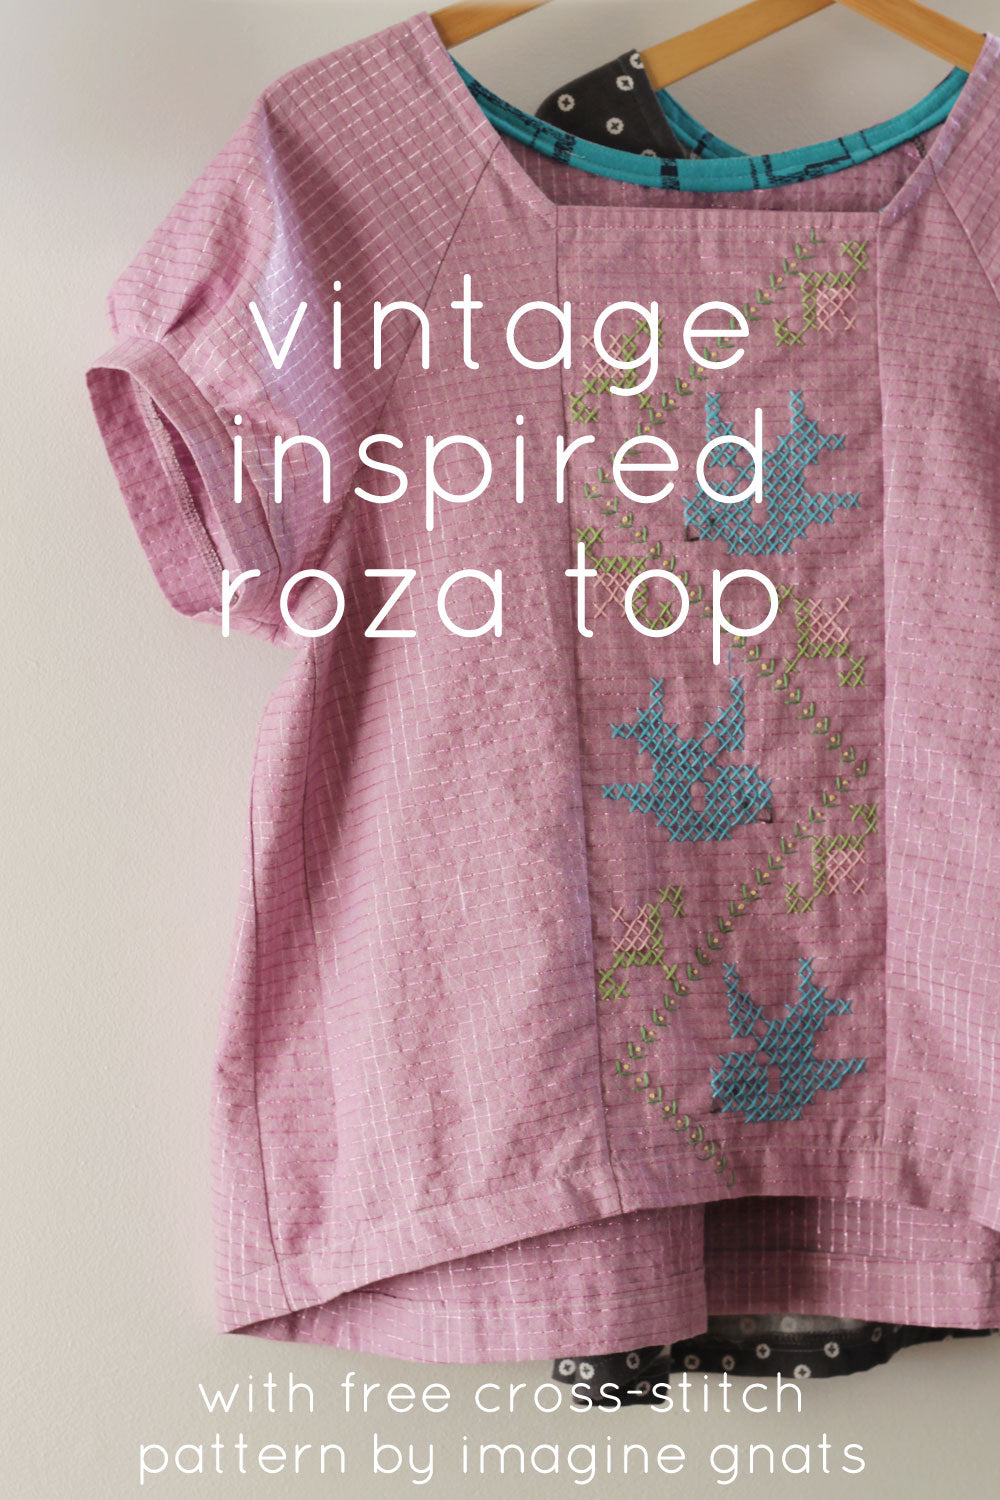 roza top with vintage inspired cross-stitch